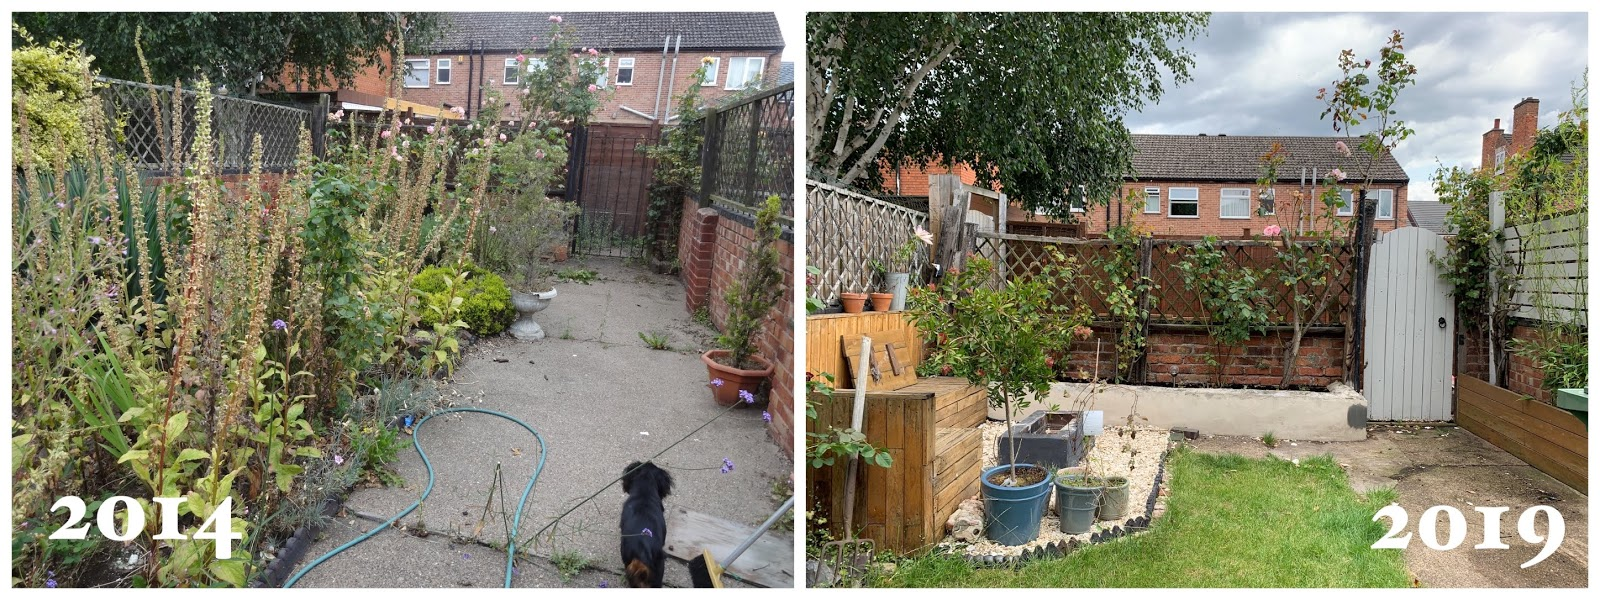 garden renovation before and after 5 years